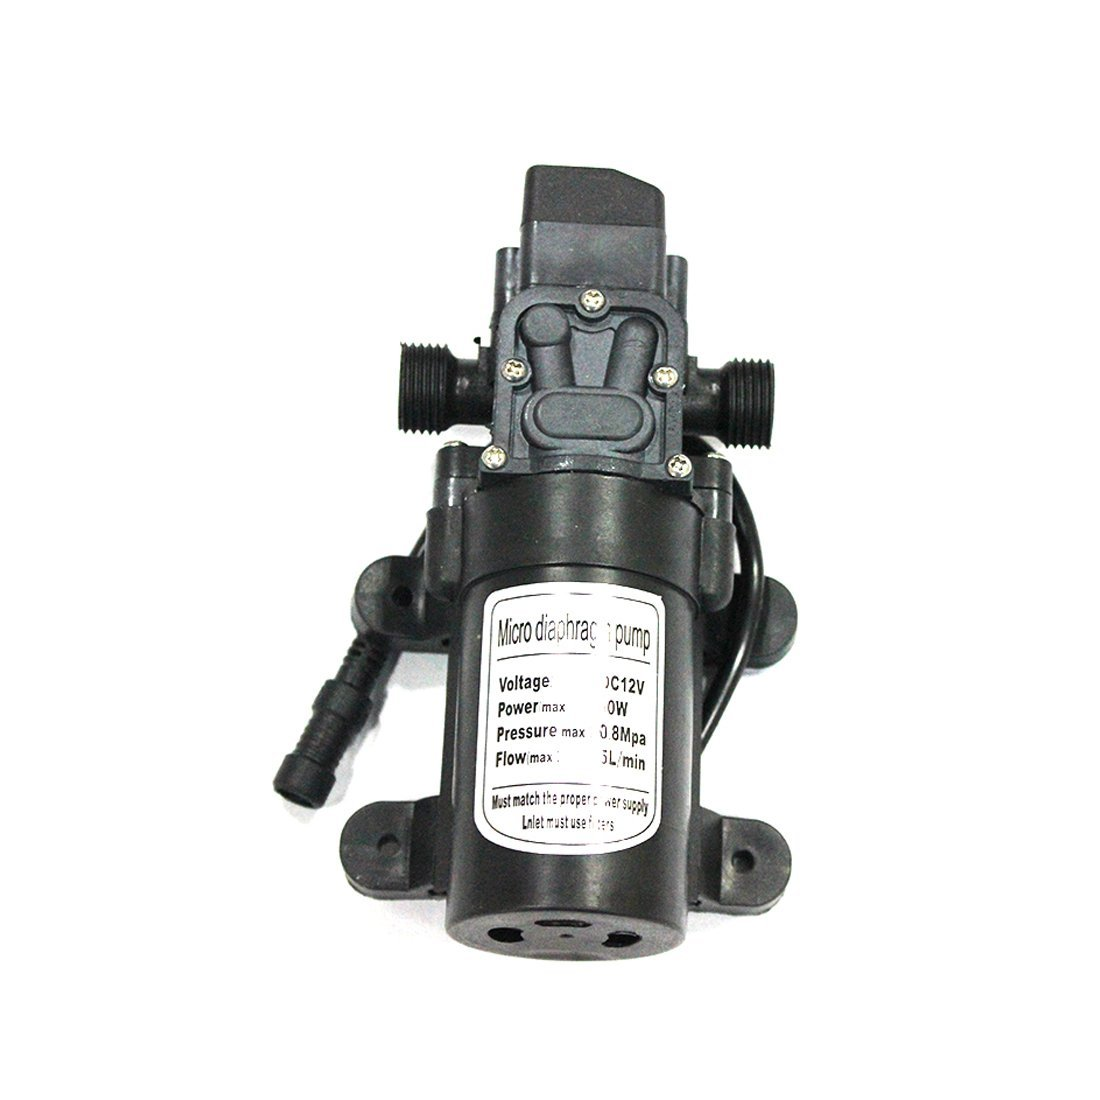 12V 60W 5L/min Self Priming Fine Mist Spray Micro Diaphragm Pump, Hose Clamps Self Priming Sprayer Pump, Fresh Water Pressure Diaphragm Pump By Hylaea